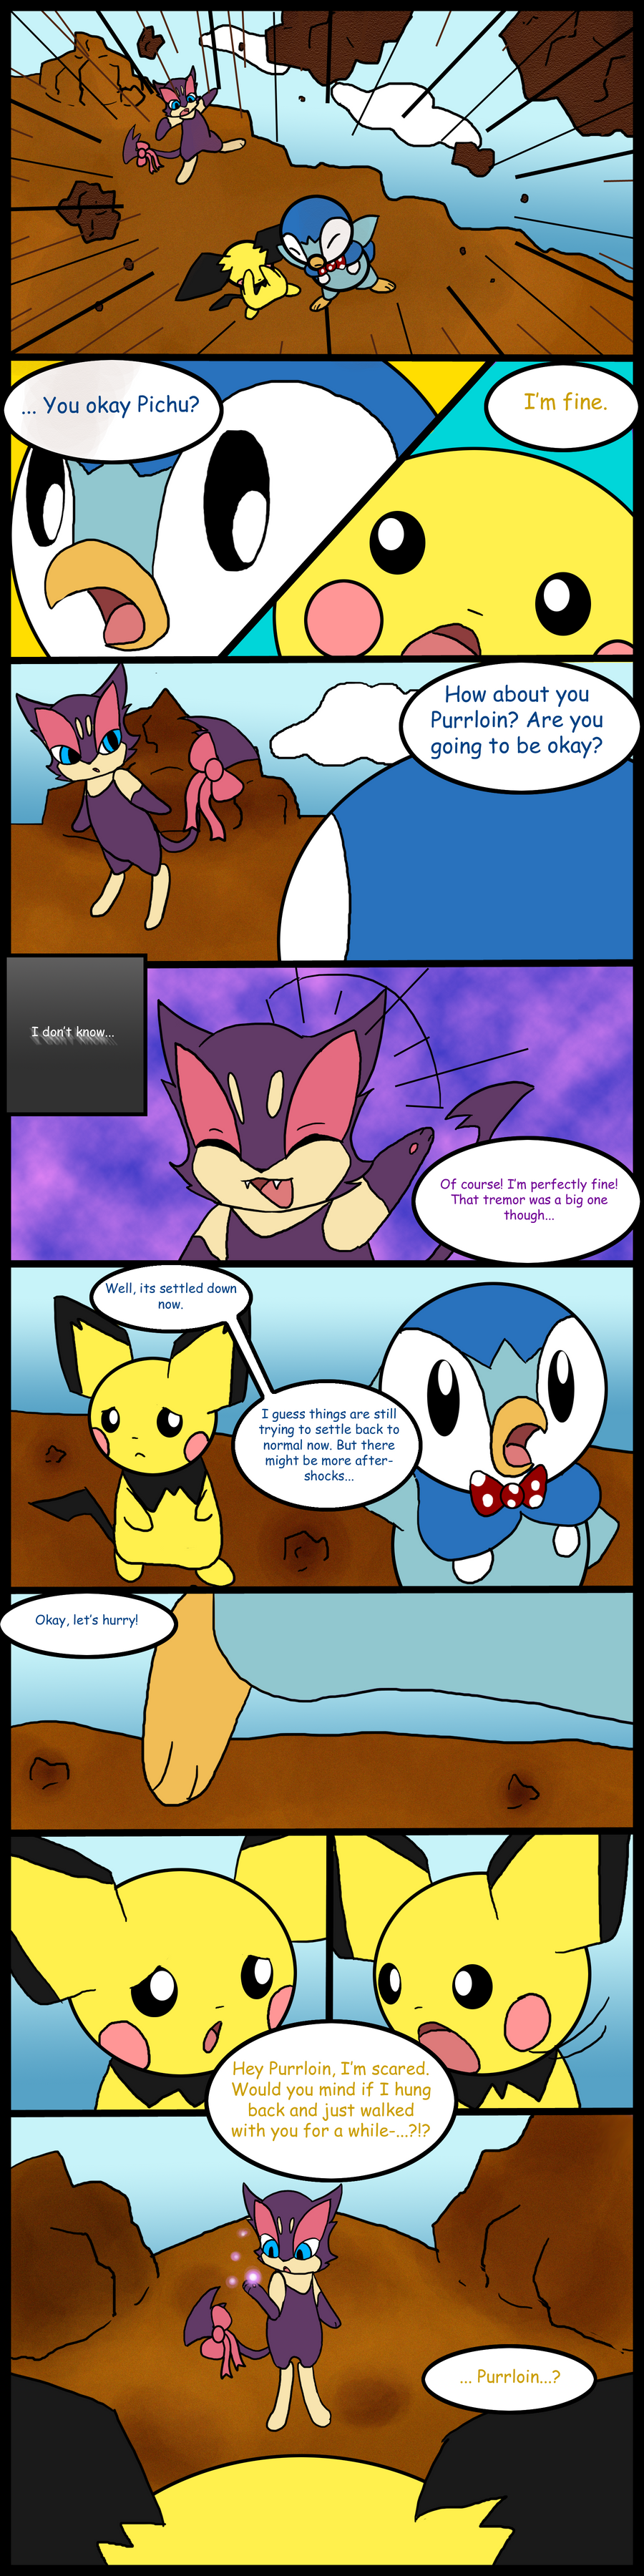 Pokemon Mystery Dungeon Ending Page2 By Myatathecupcake On